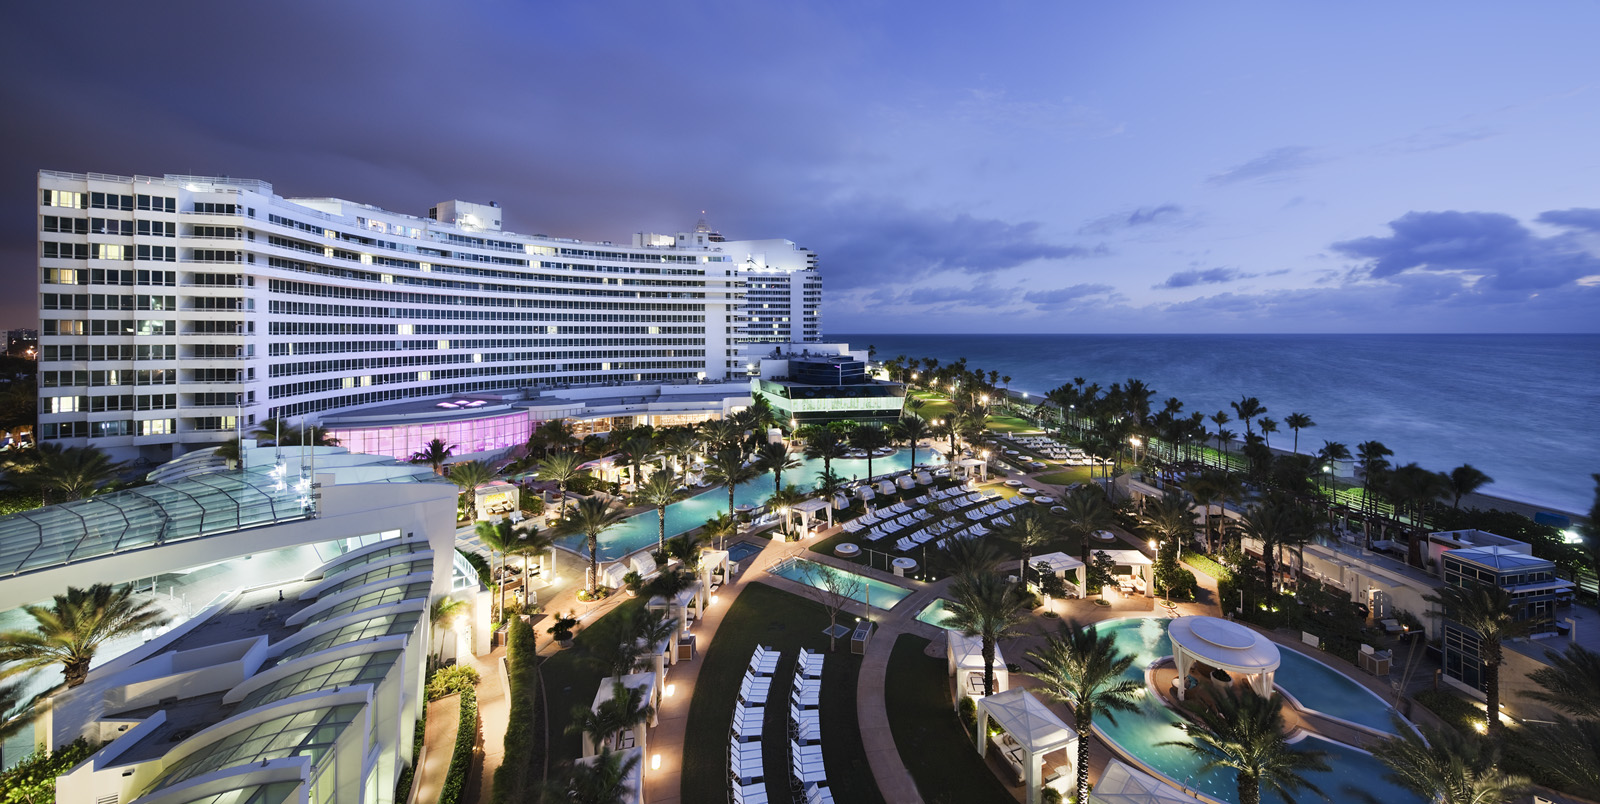 Fontainebleau Miami Beach announces featured restaurants and menus for Miami Spice 2014